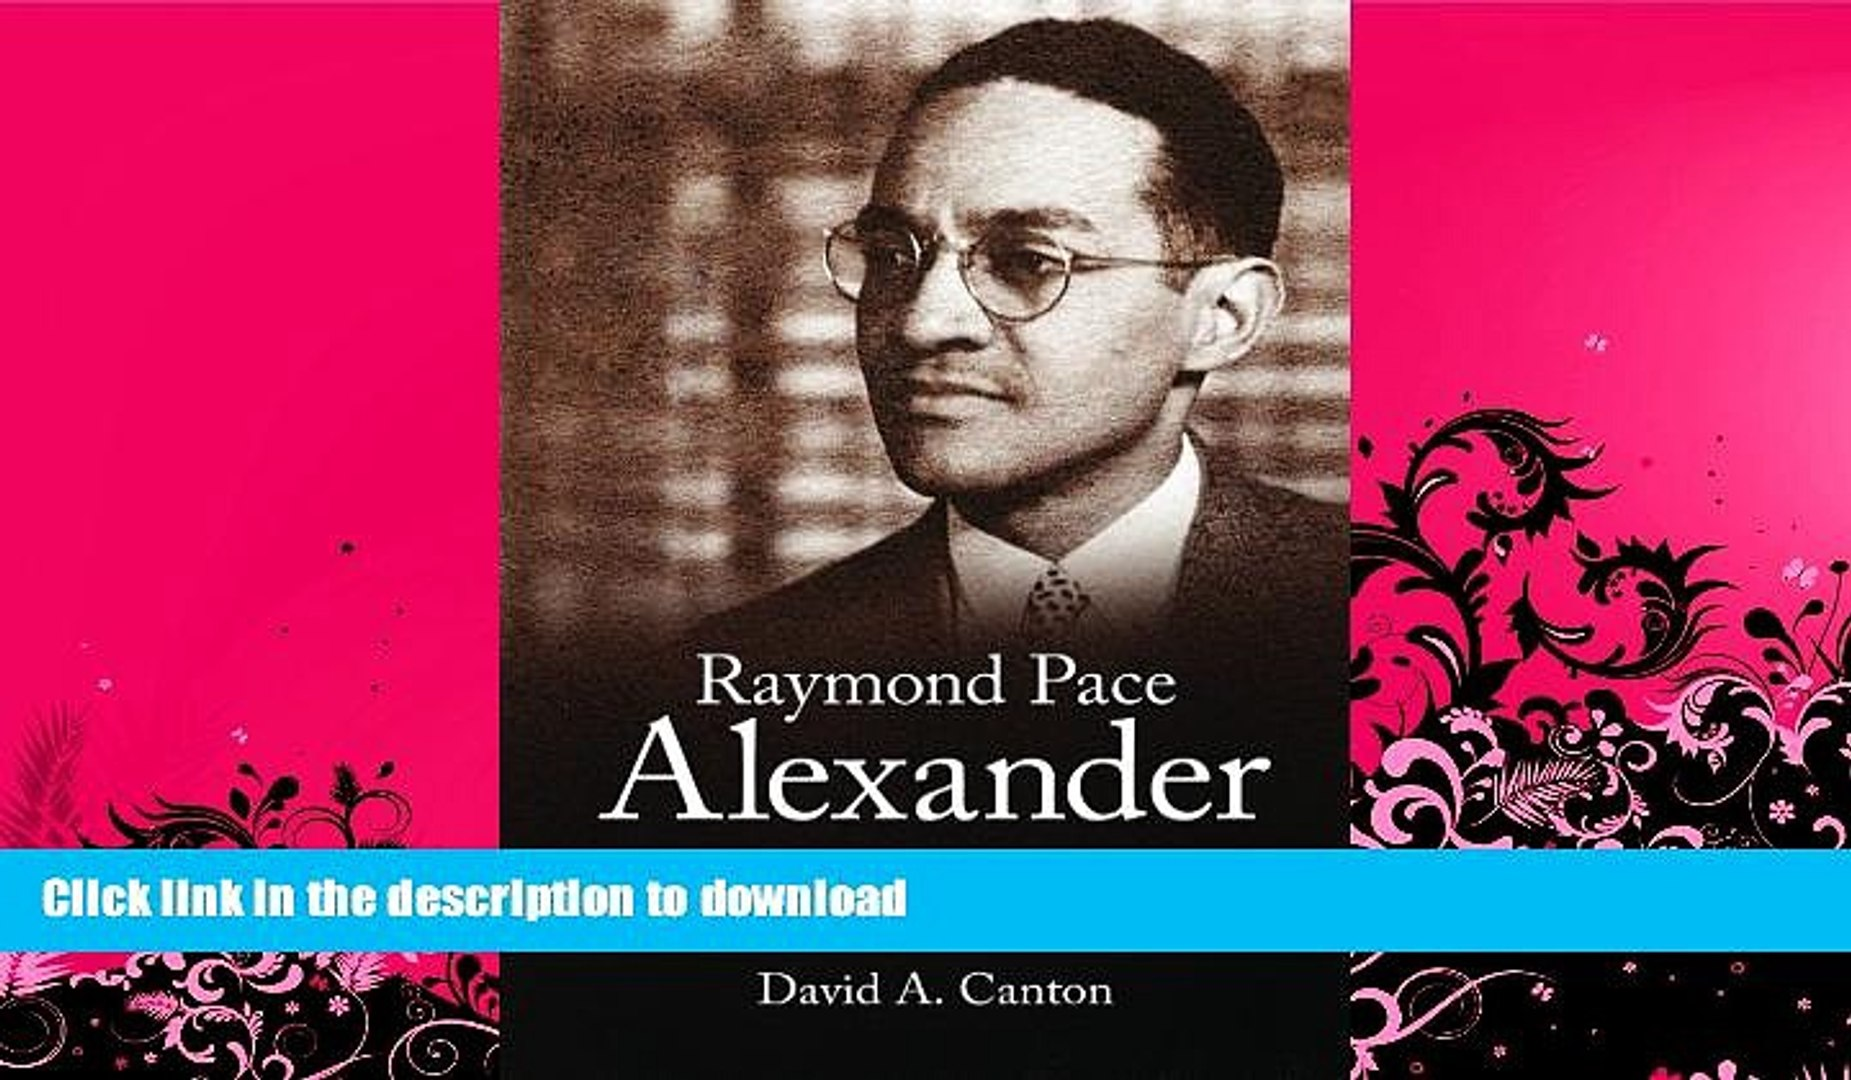 READ  Raymond Pace Alexander: A New Negro Lawyer Fights for Civil Rights in Philadelphia